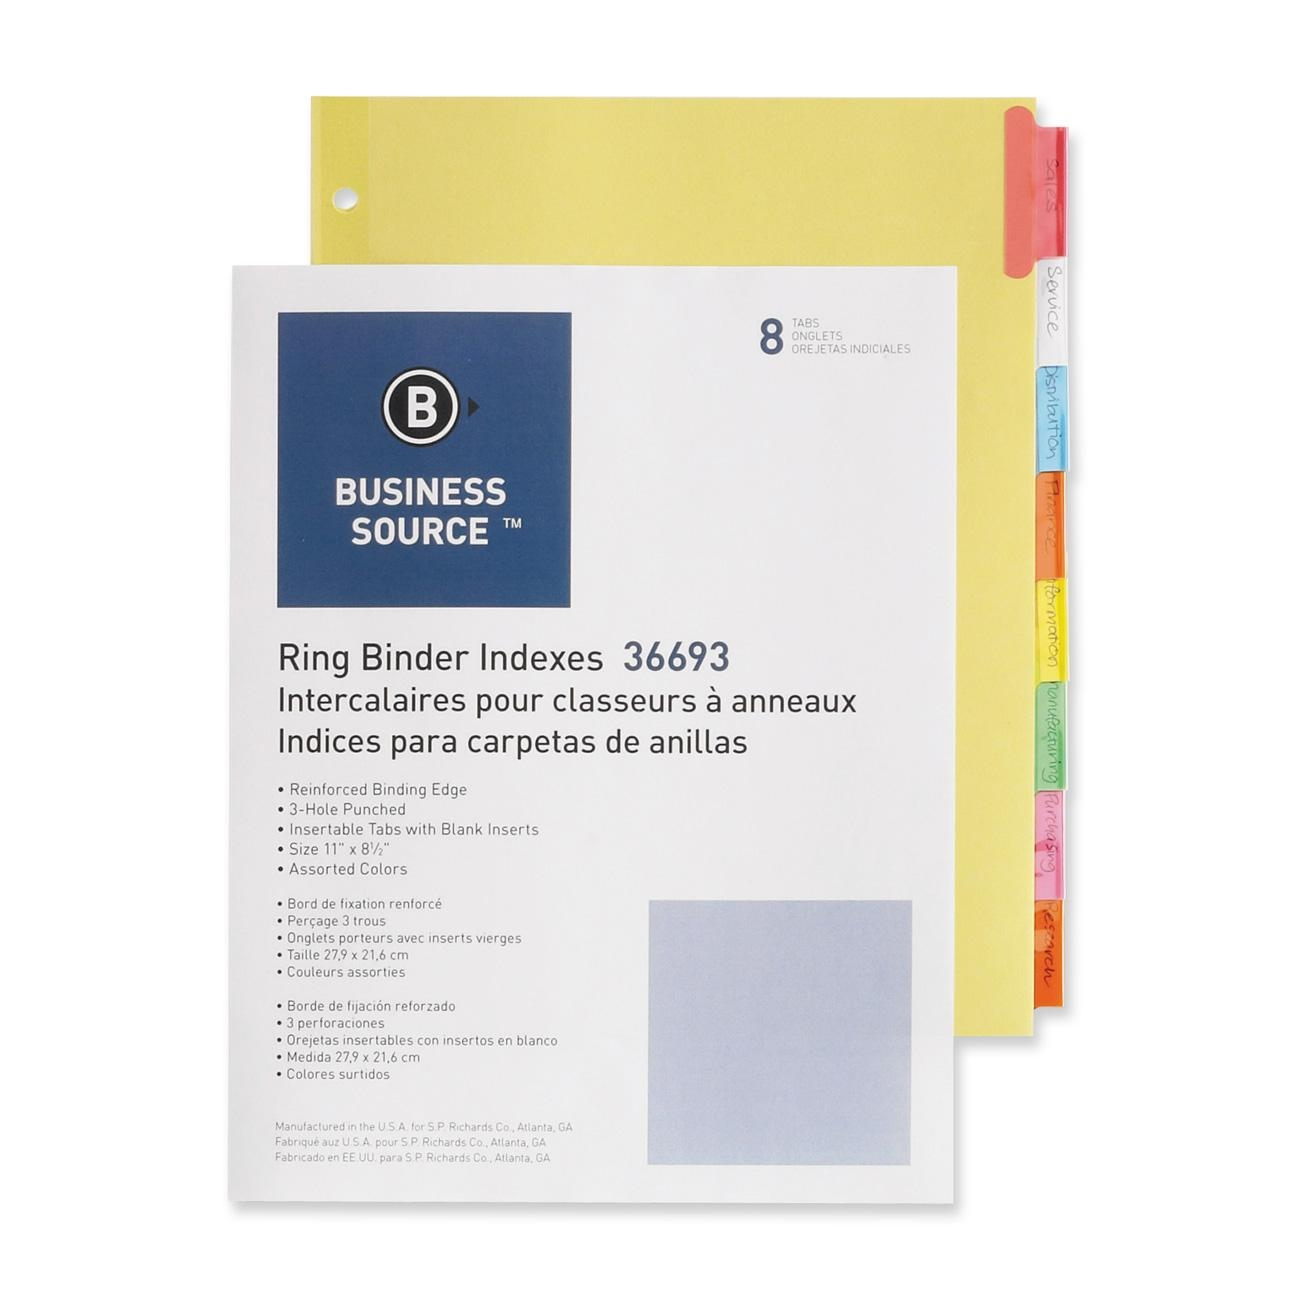 Business Source Printer Papers, Speciality Papers & Pads